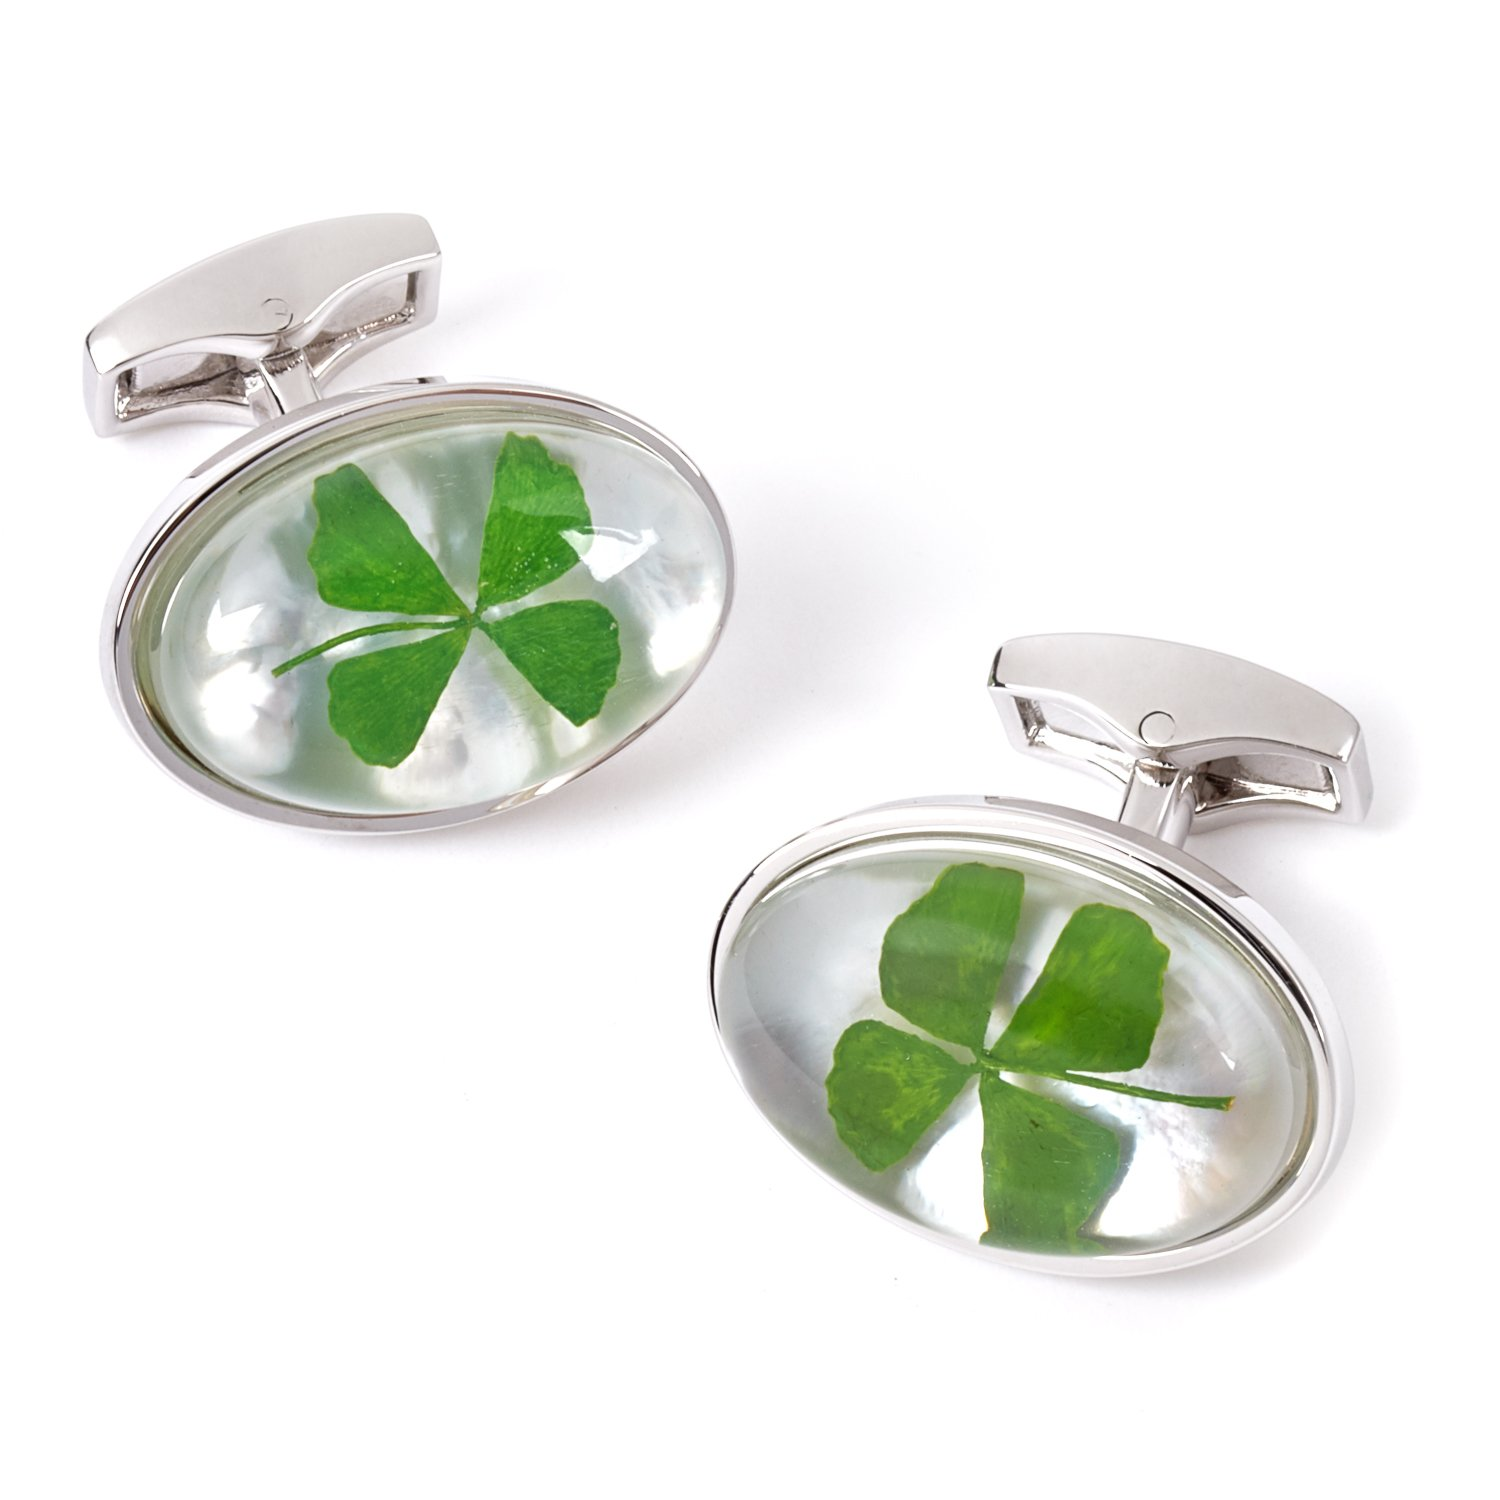 Tateossian Four Leaf Clover Cufflinks, Rhodium Silver casing CL7009